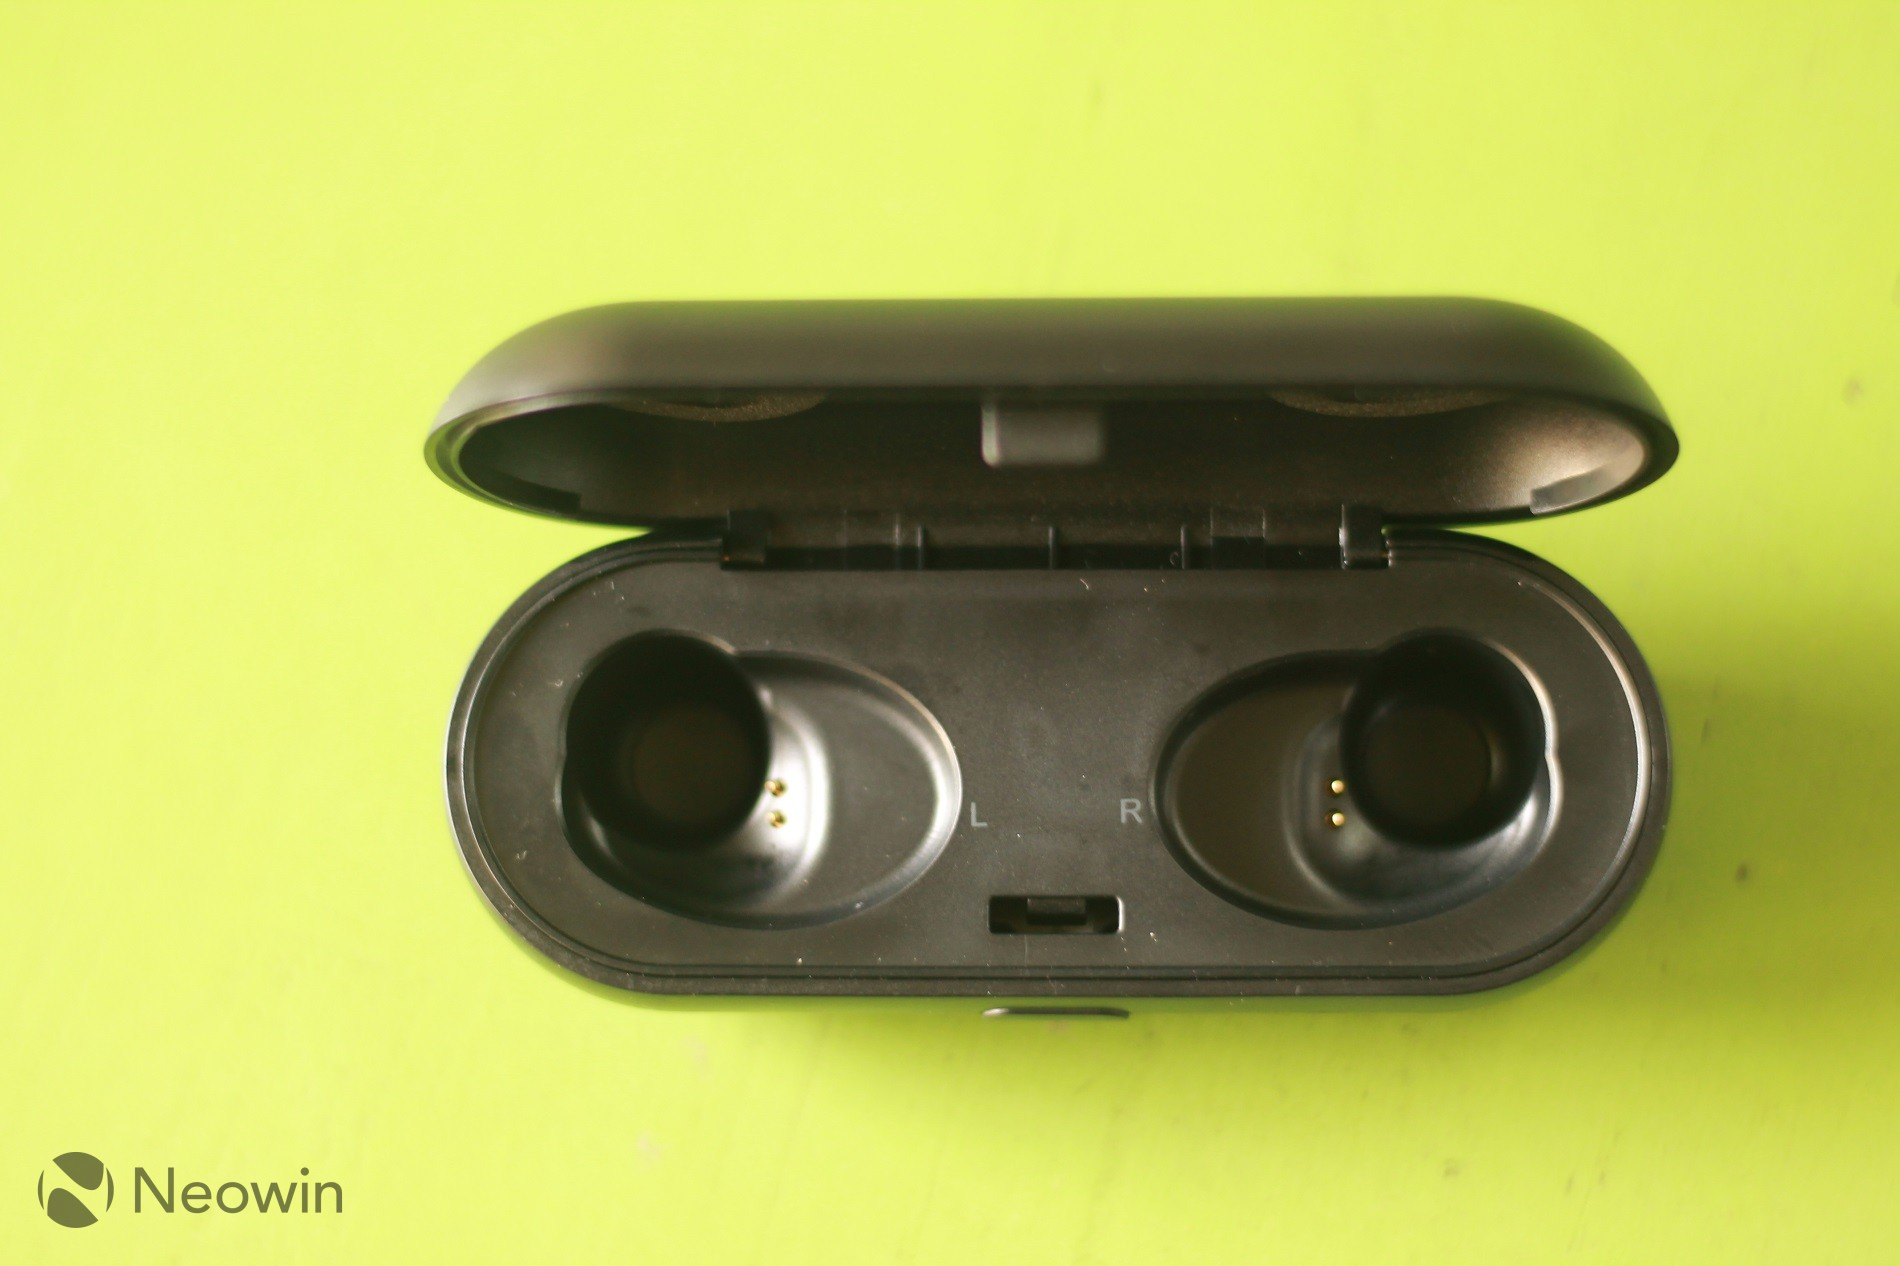 LiteXim Aerobuds review: Completely wireless earphones for